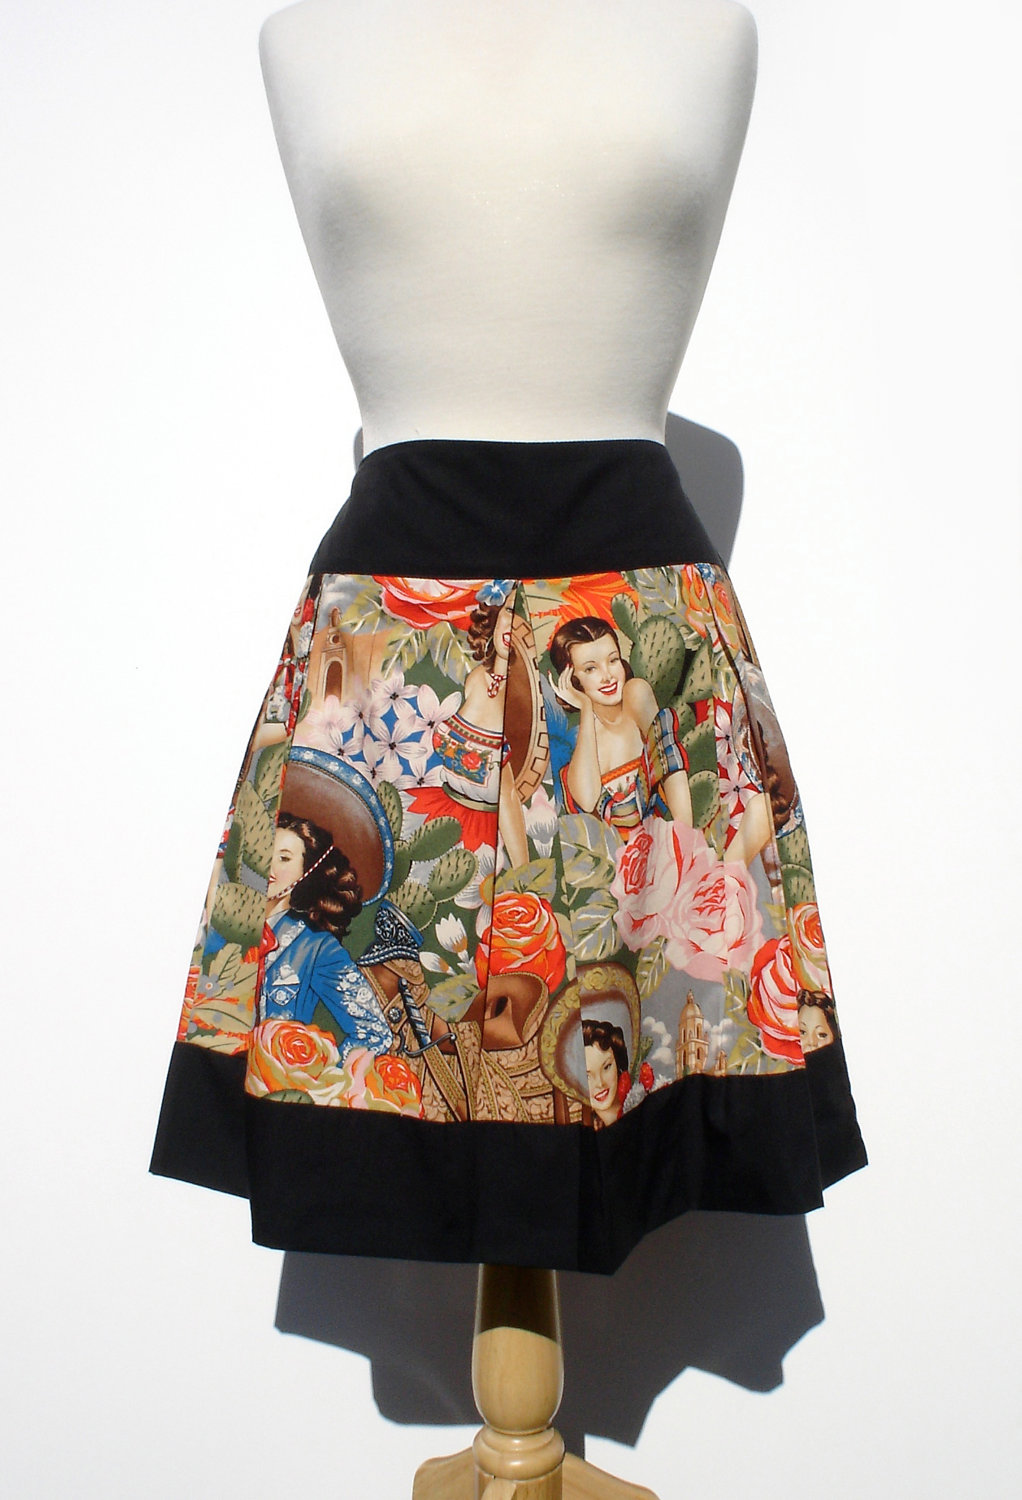 da531bcc3 ... Day of the Dead Rockabilly Mexican Skirt / Pinup Skirt - Thumbnail 3 ...